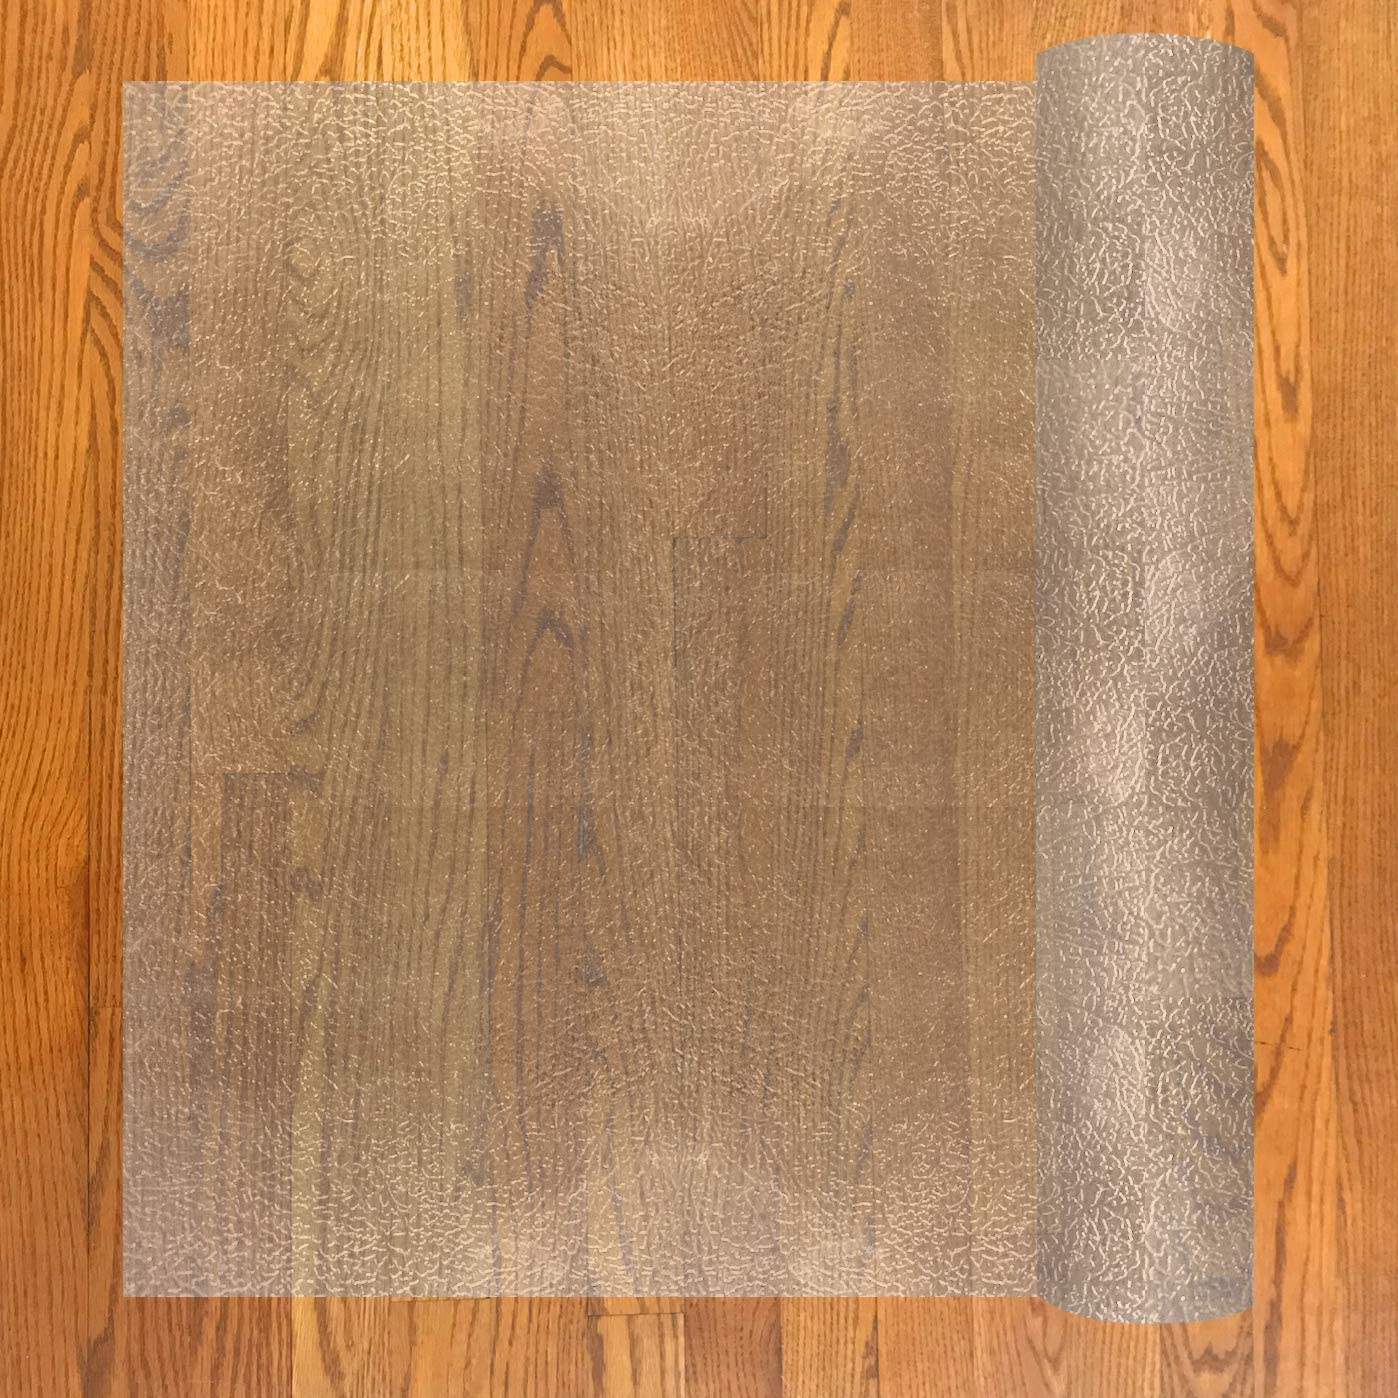 Resilia - Deluxe Clear Vinyl, Plastic Floor Runner/Protector for Hardwood Floors - Skid-Resistant, Textured Pattern, Extra Wide (48 Inches Wide x 12 Feet Long)